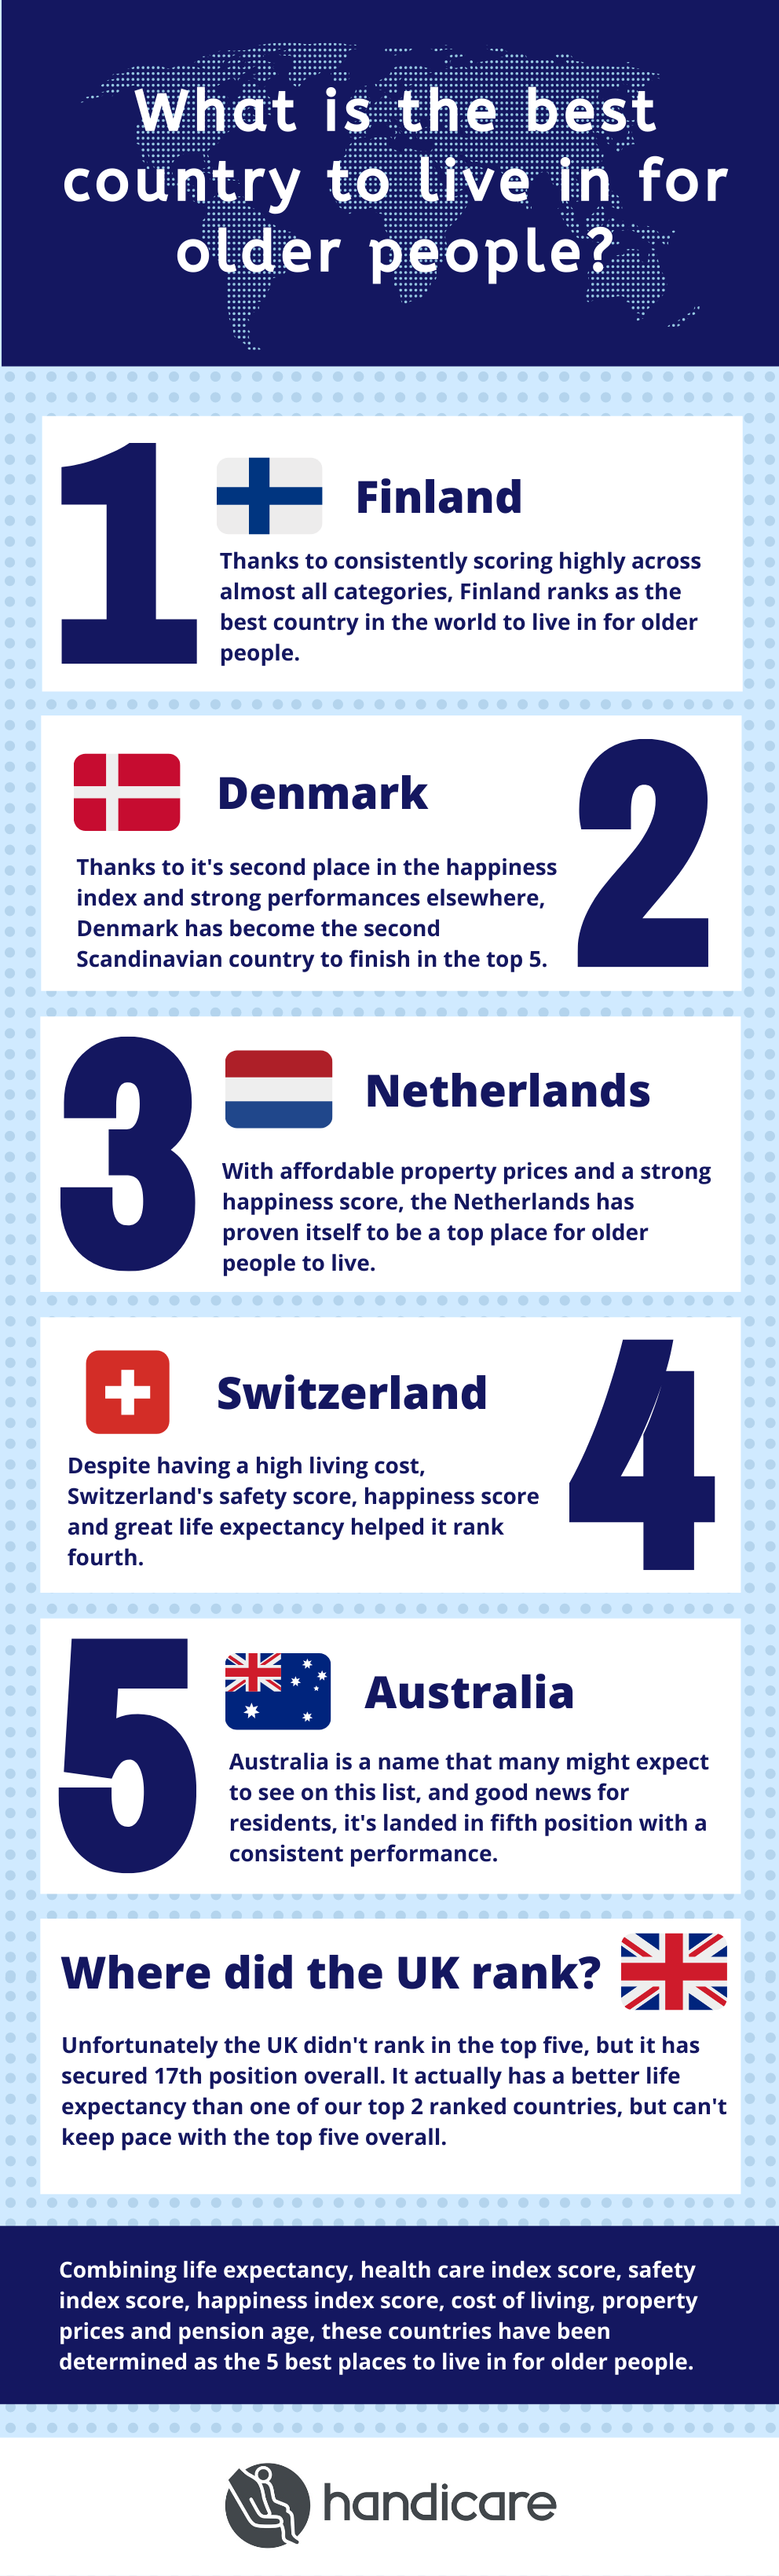 What is the best country to live in for older people?